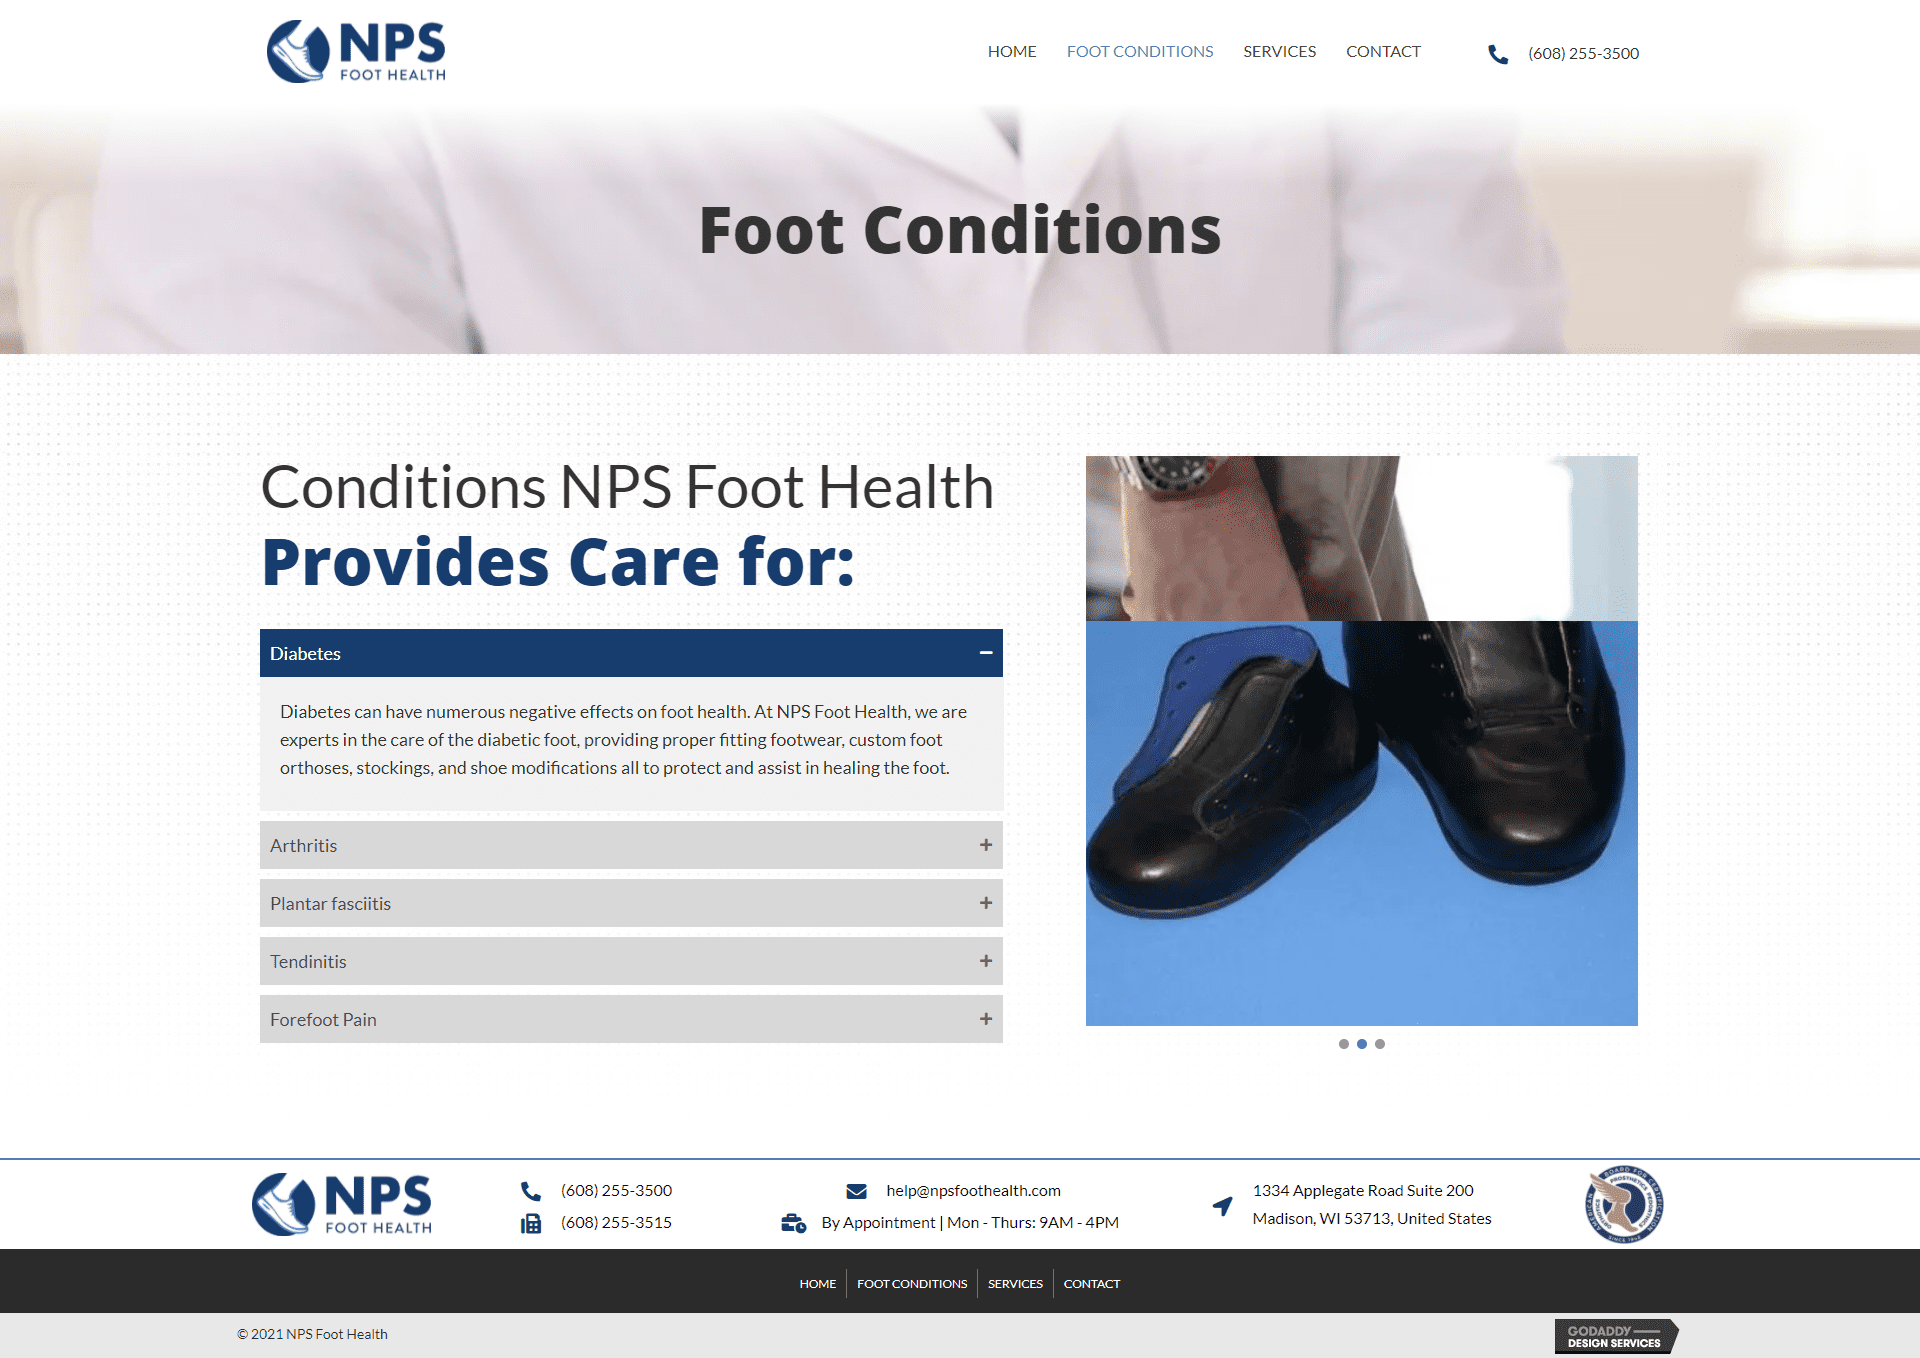 NPS Foot Health Foot Conditions